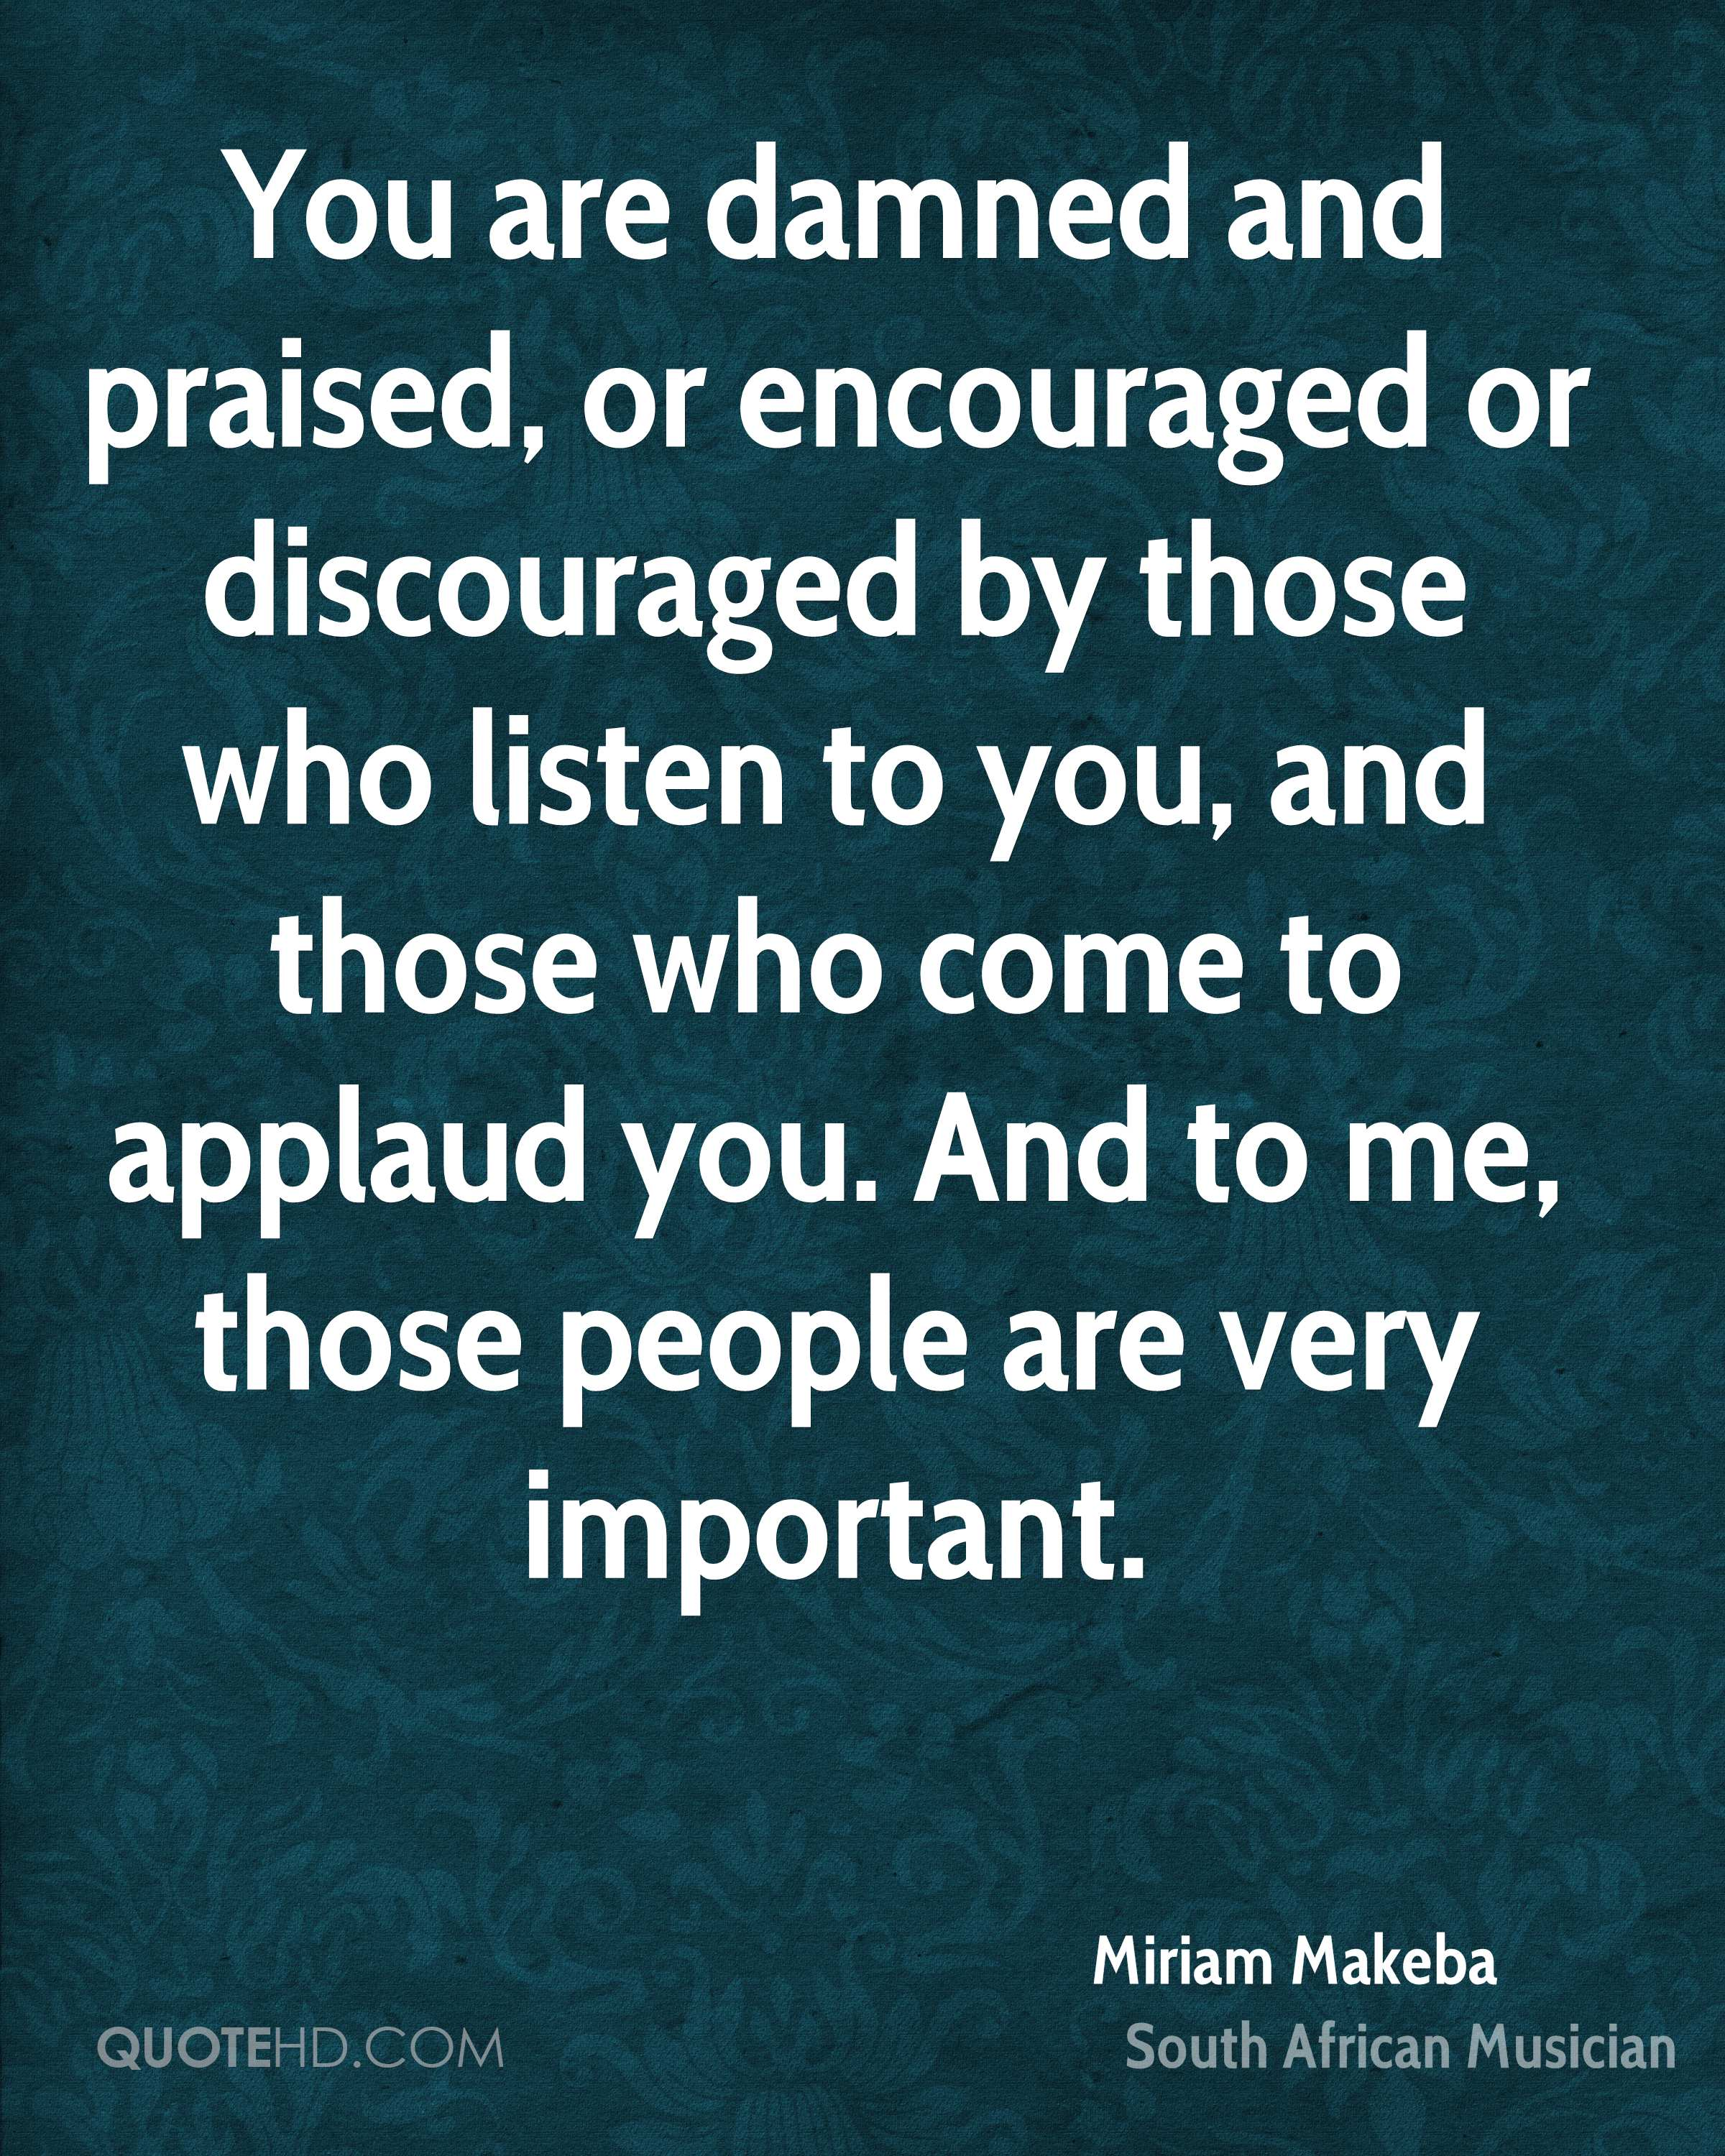 You are damned and praised, or encouraged or discouraged by those who listen to you, and those who come to applaud you. And to me, those people are very important.